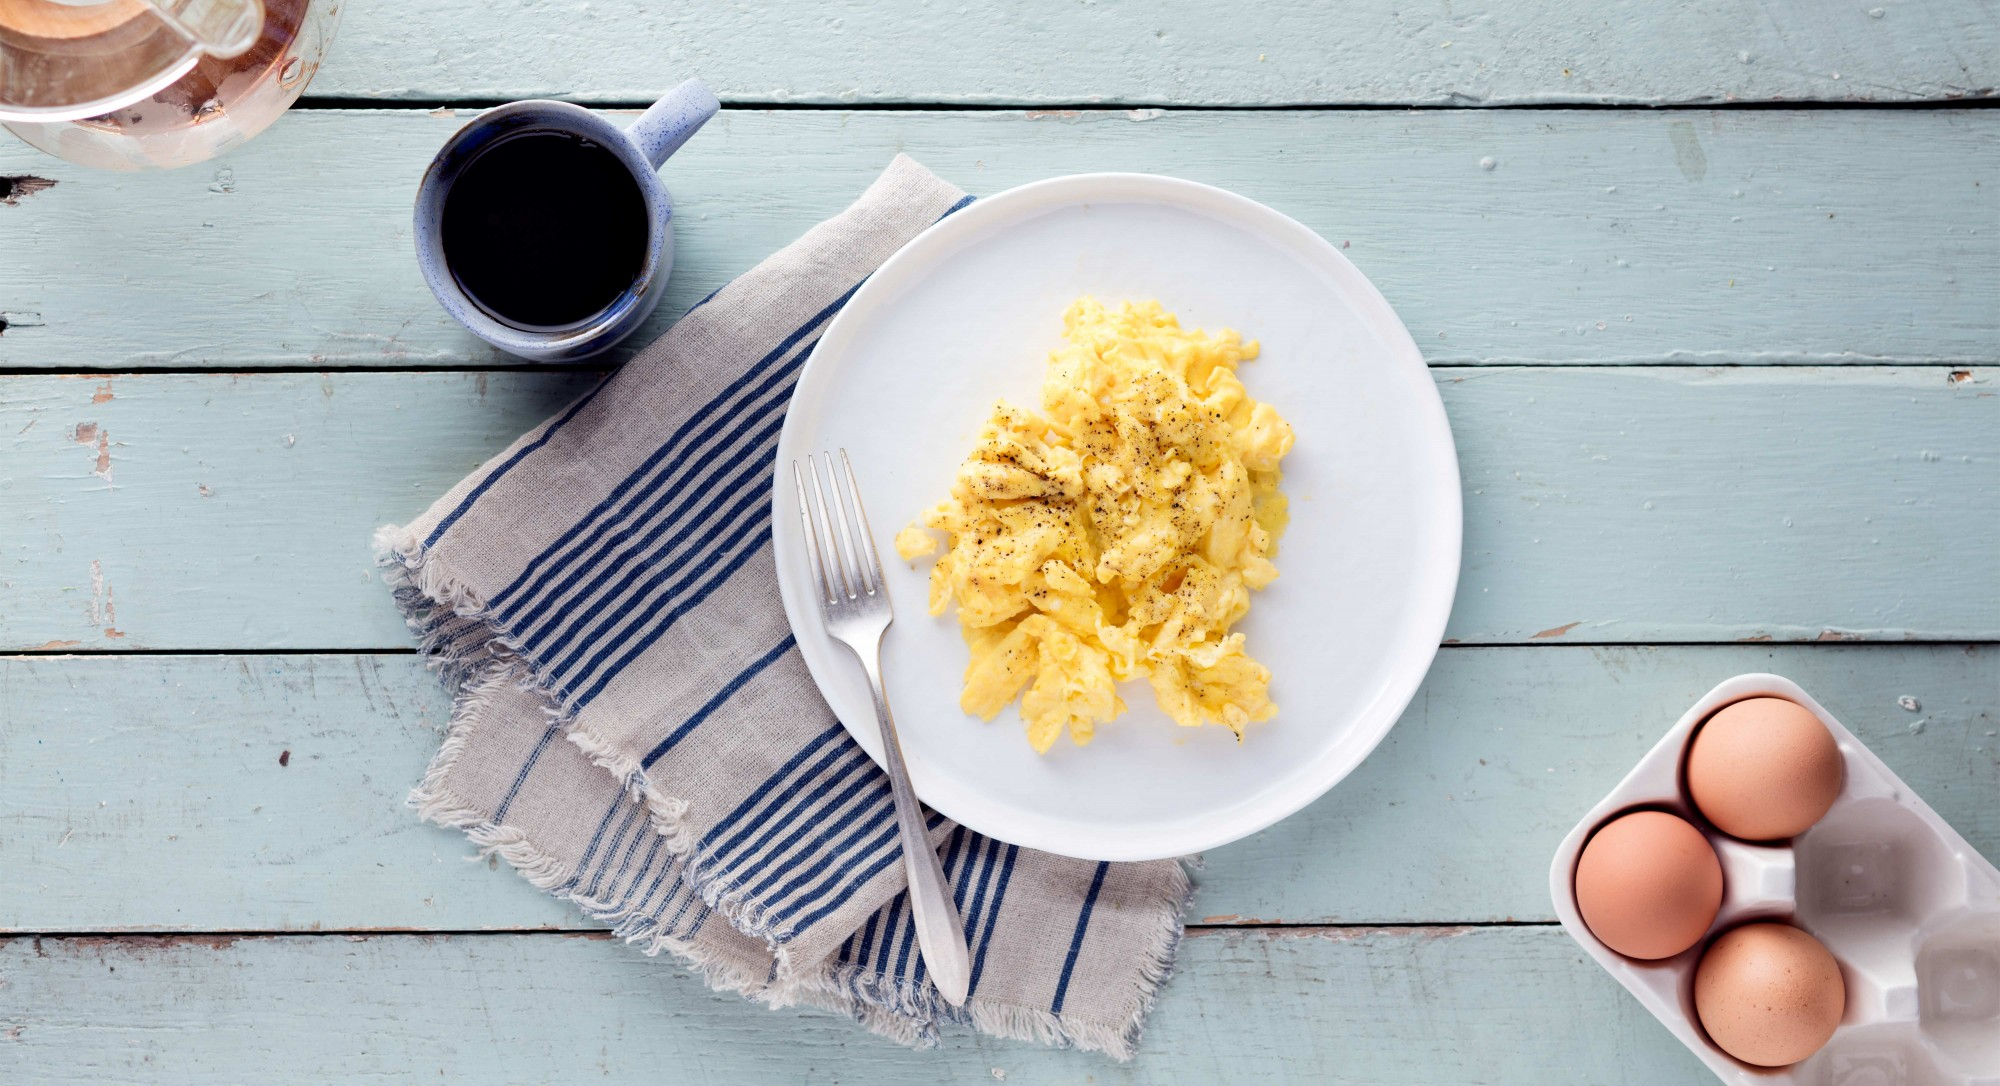 Kitchen Hack: Master Perfect Scrambled Eggs With These 5 Tips